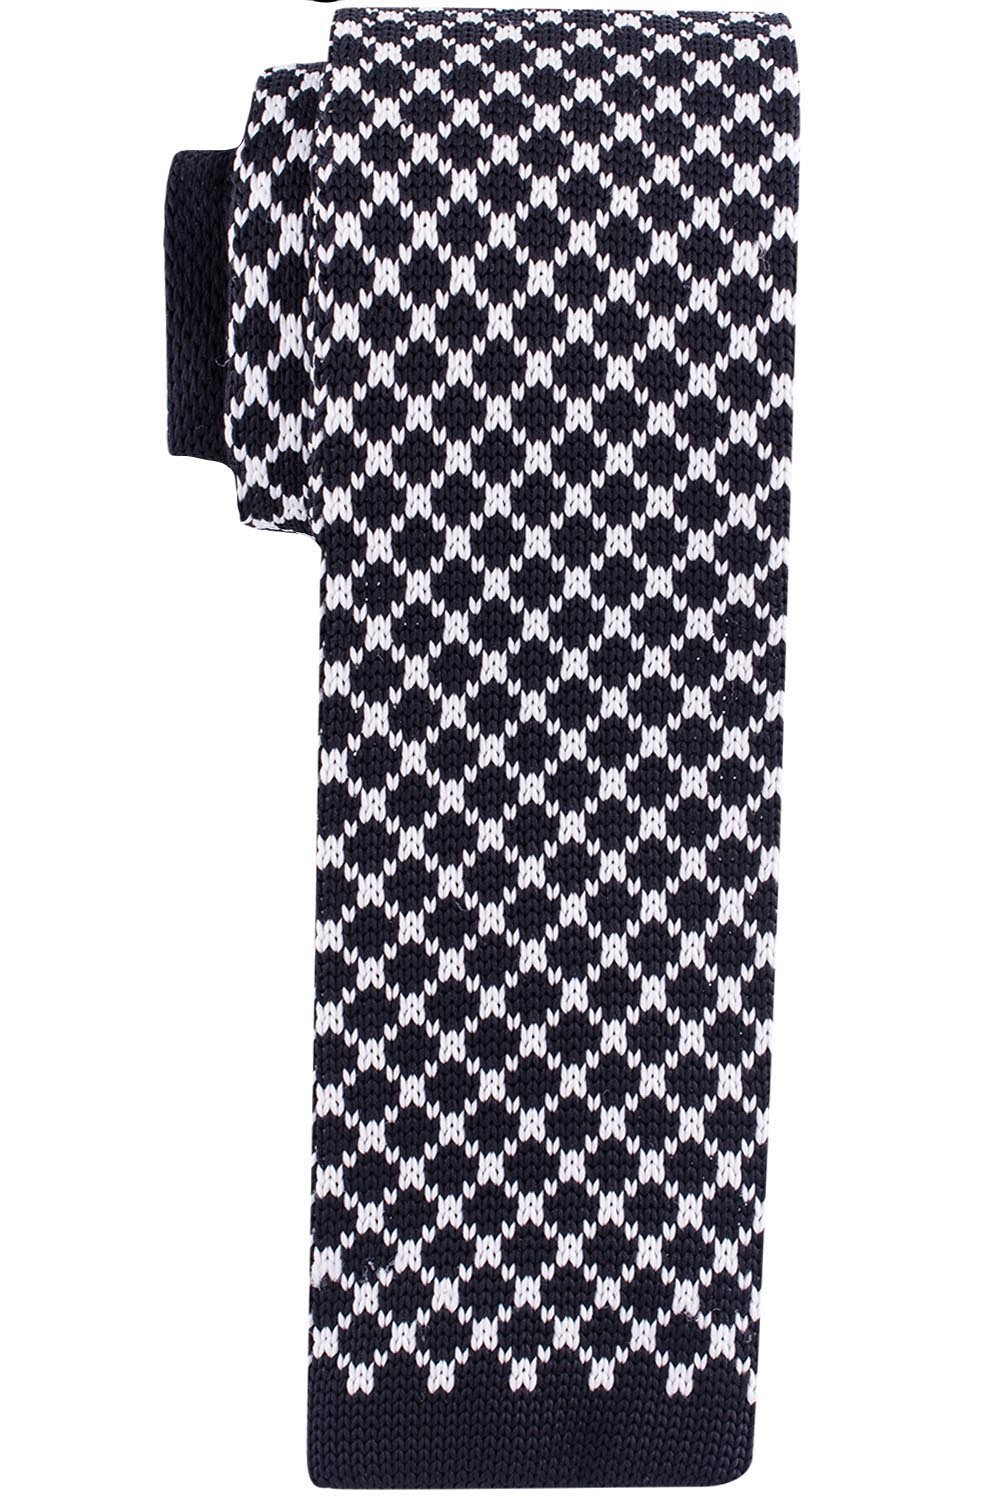 Rancho Plaid Black and White Slim Knitted Necktie